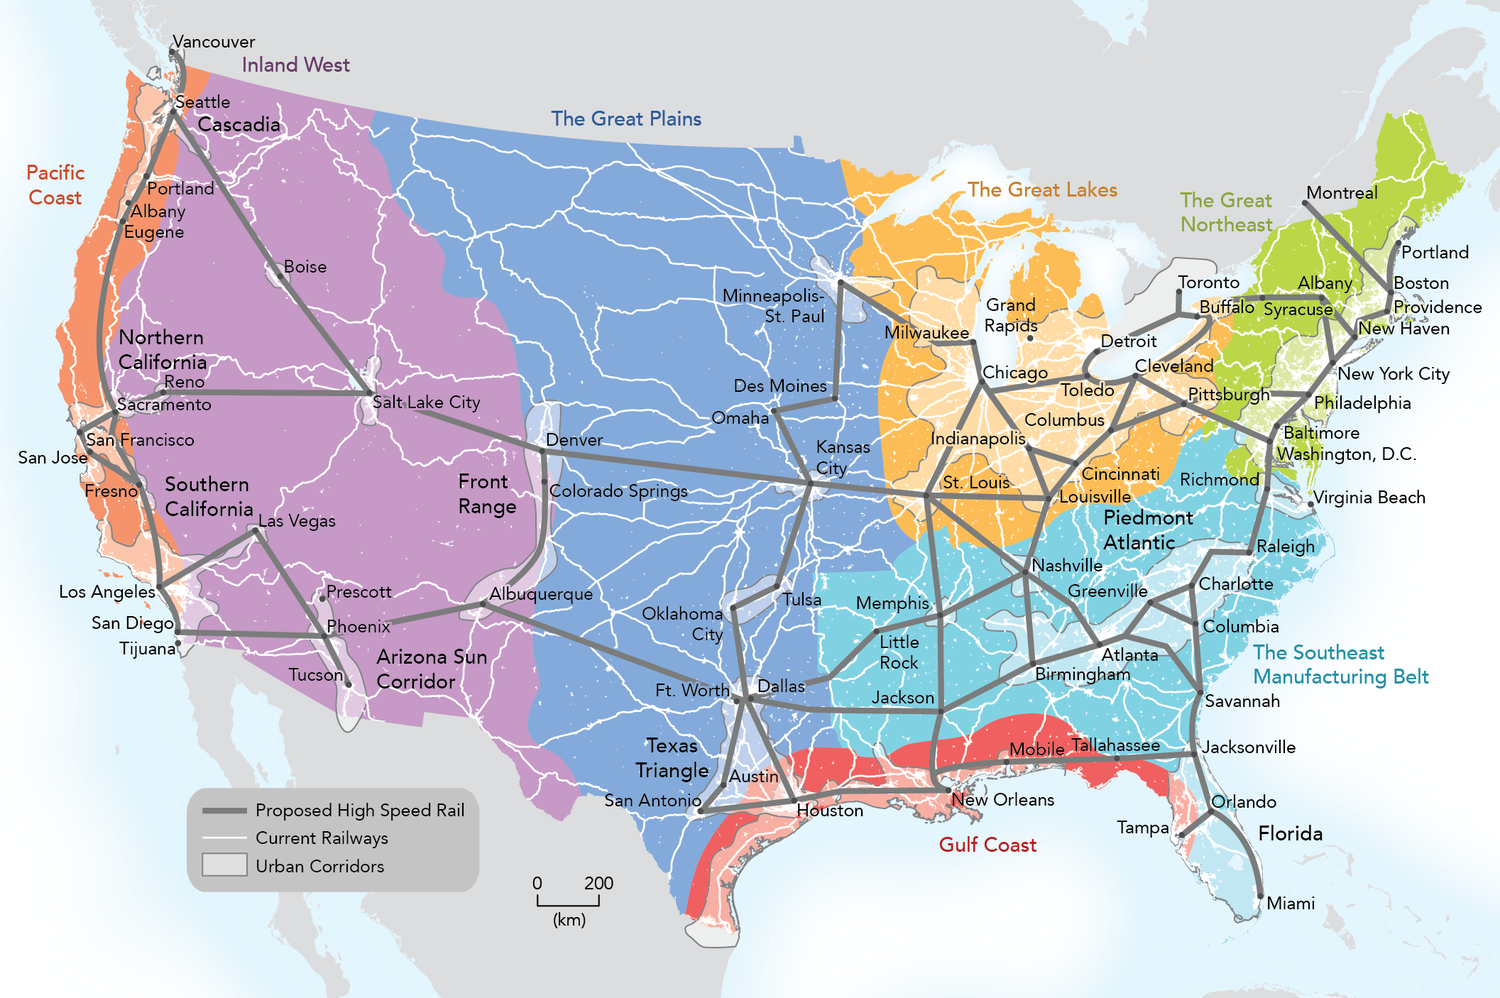 Our Maps America  Tracking Growth In The US National USA Rail - Railway map of us